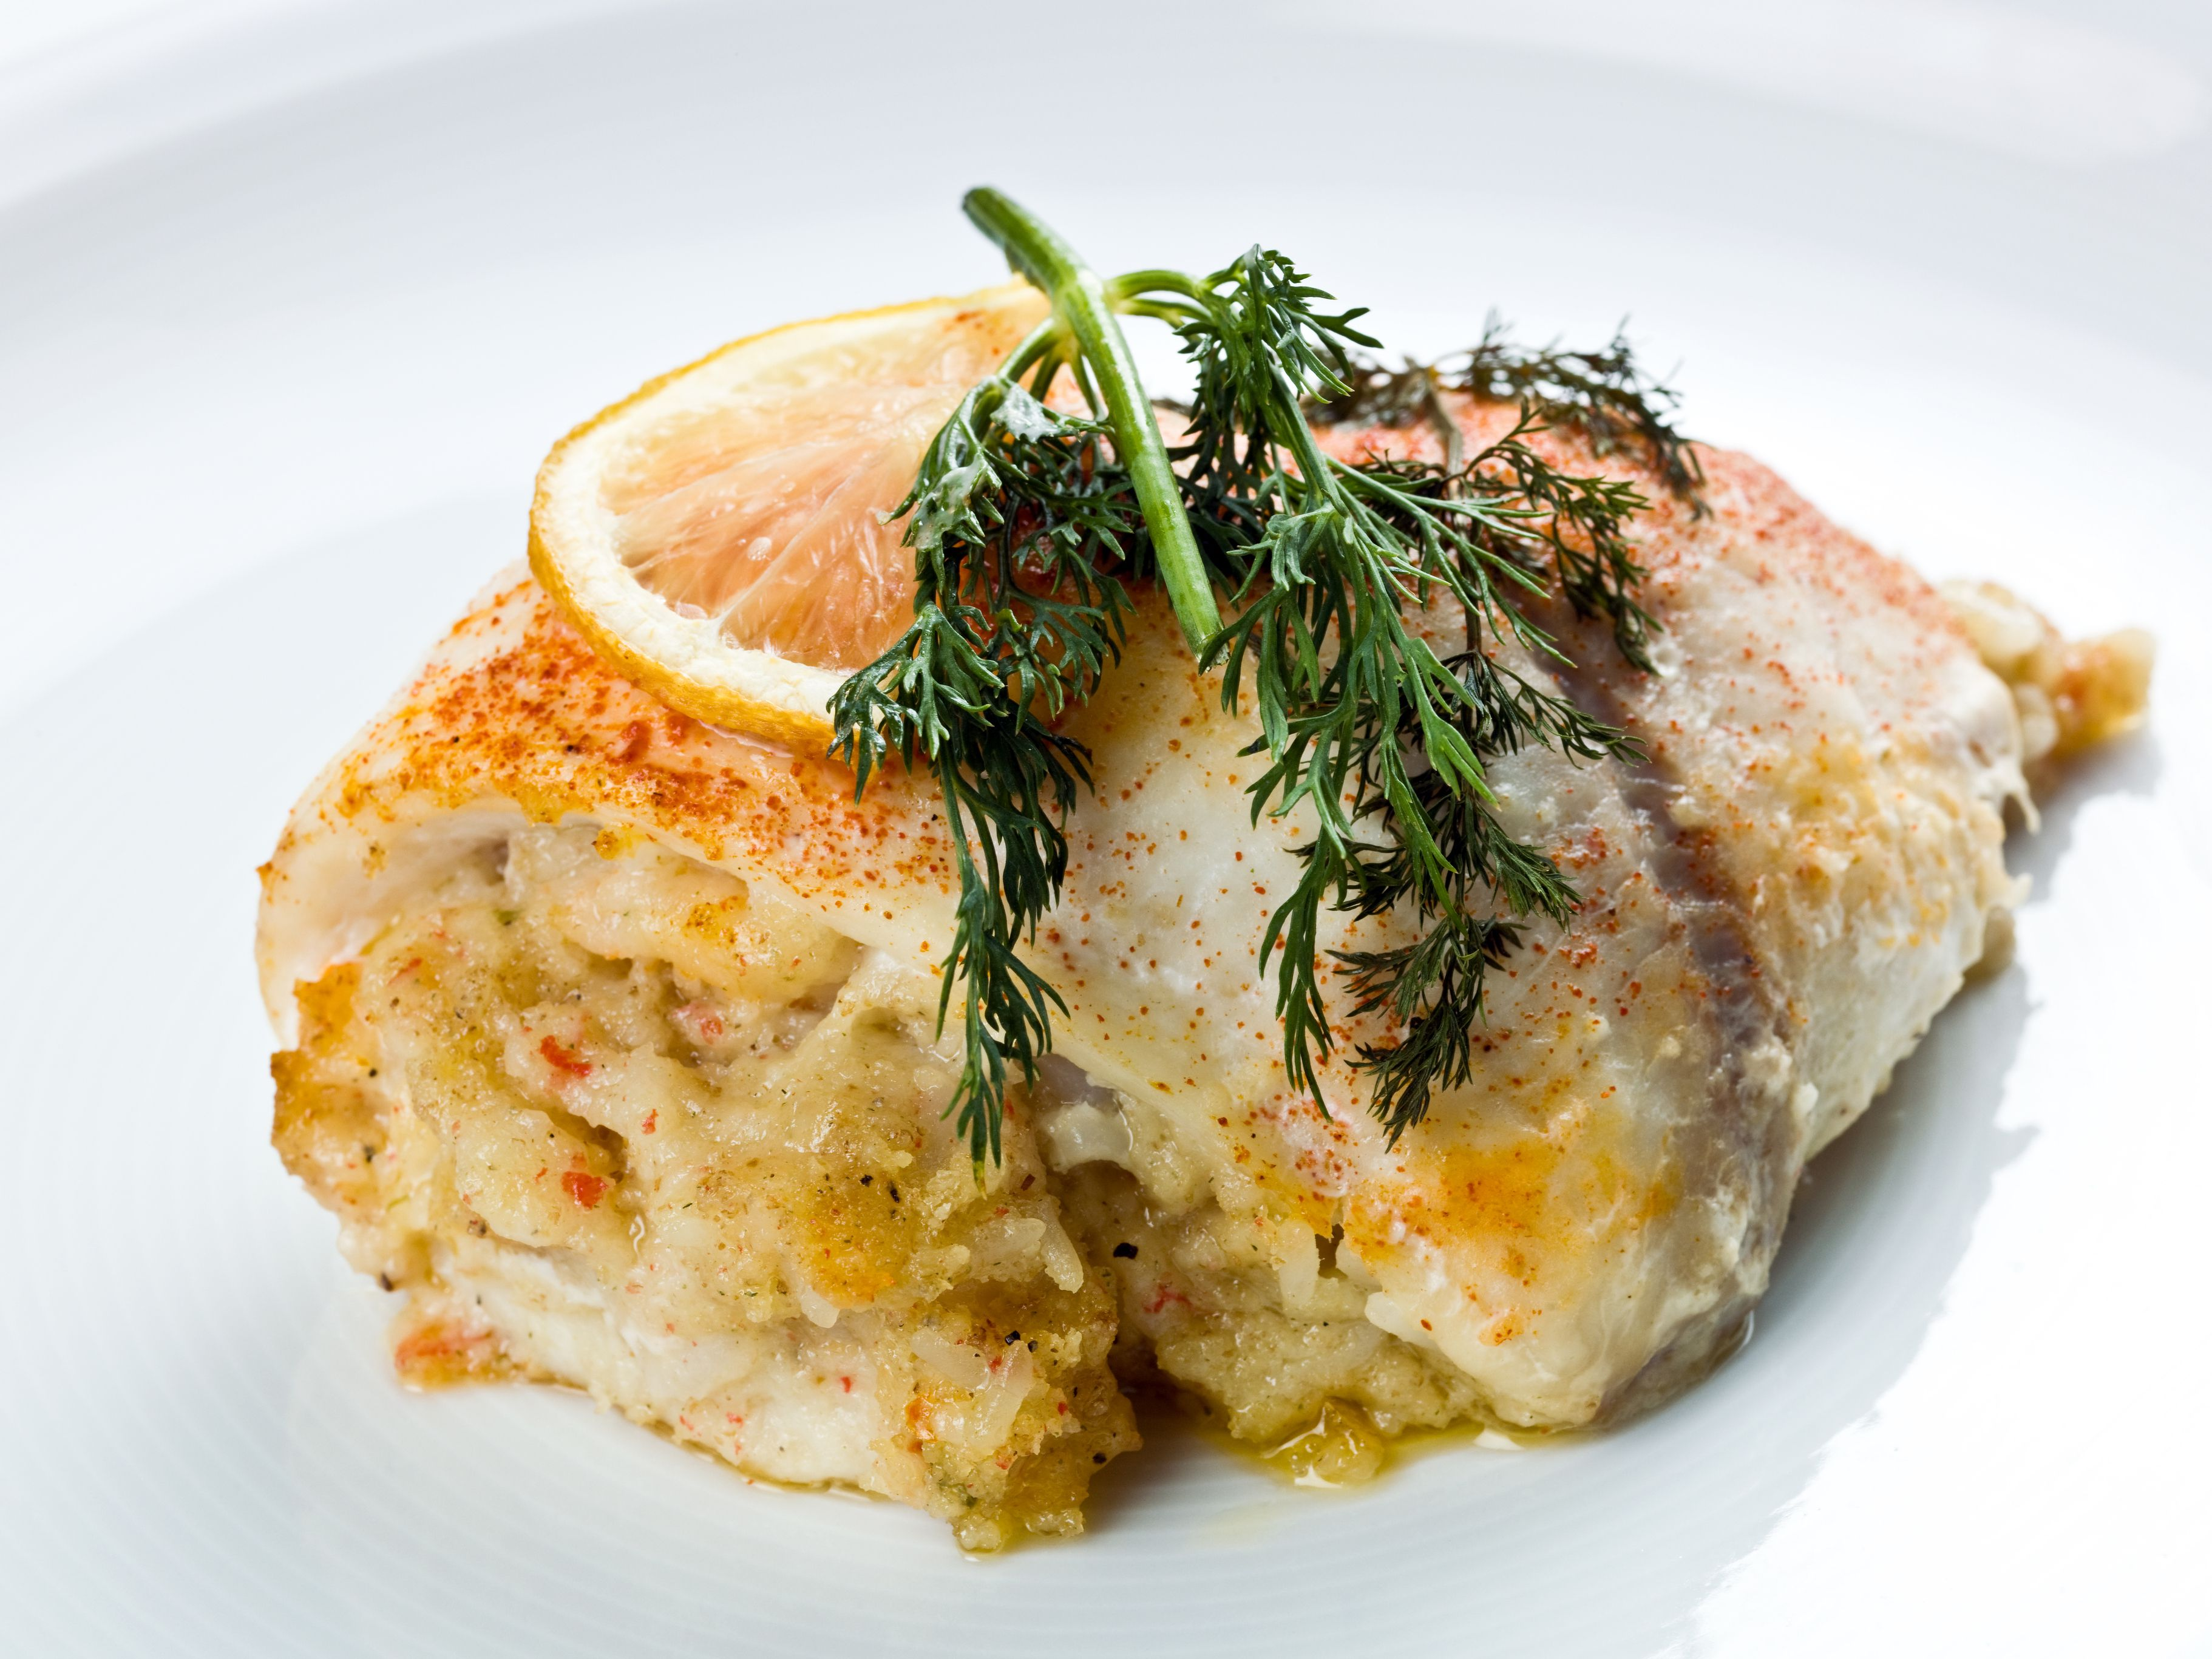 Baked Stuffed Fish Fillet Recipe With Breadcrumbs